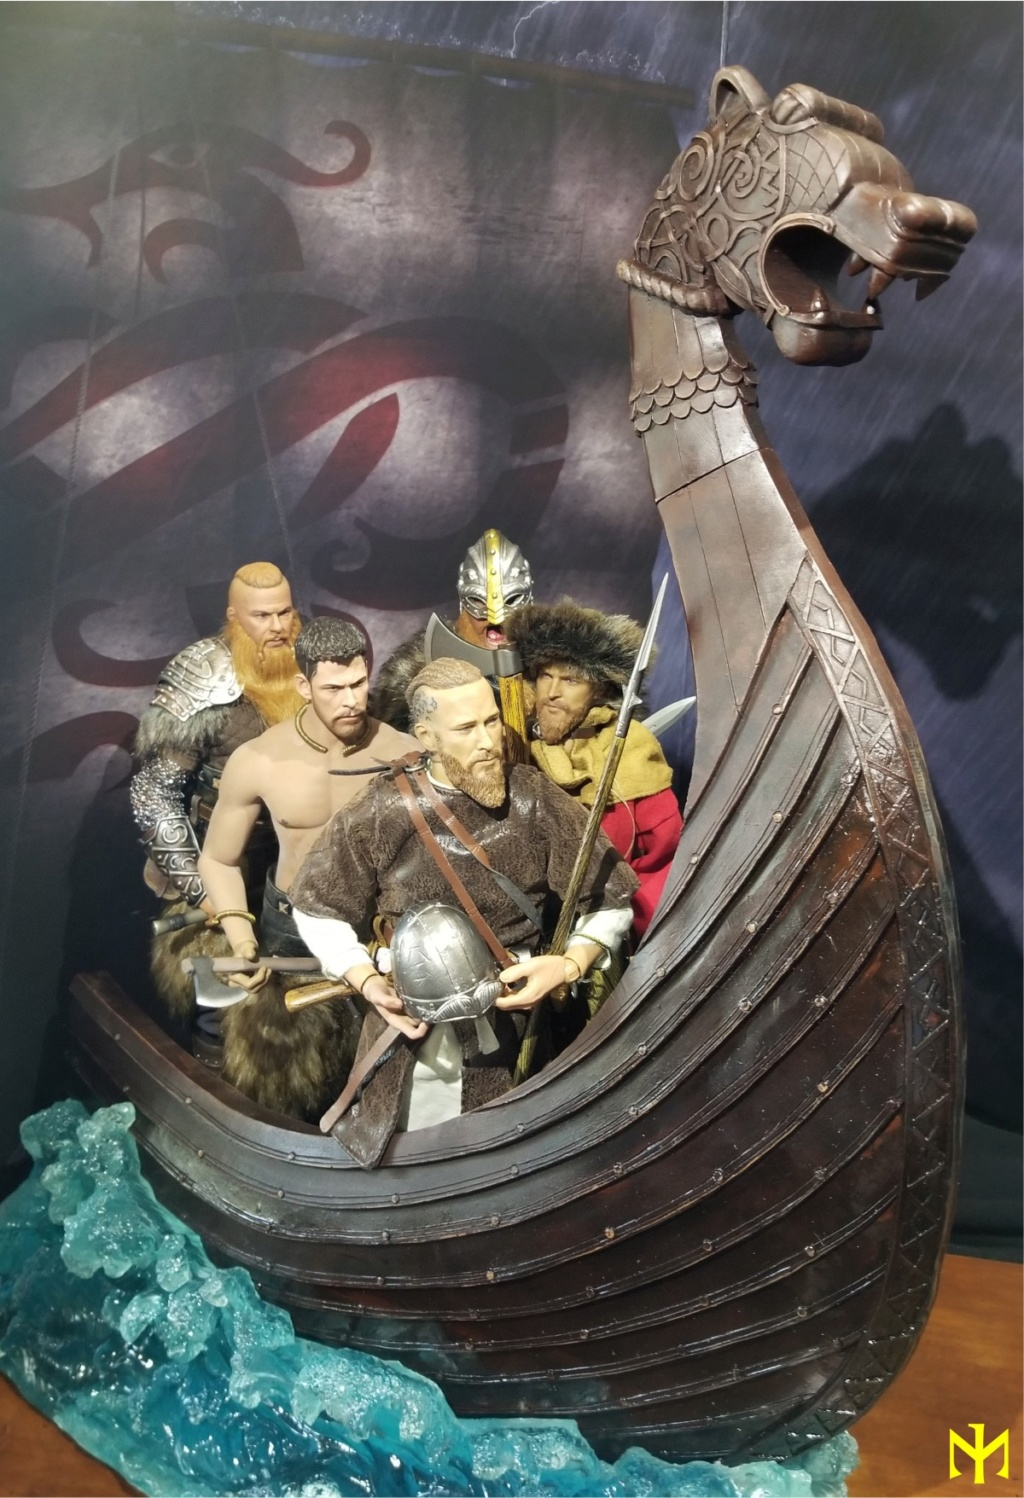 Vikings Vanquisher Viking Ship Diorama Coomodel Review Viking41